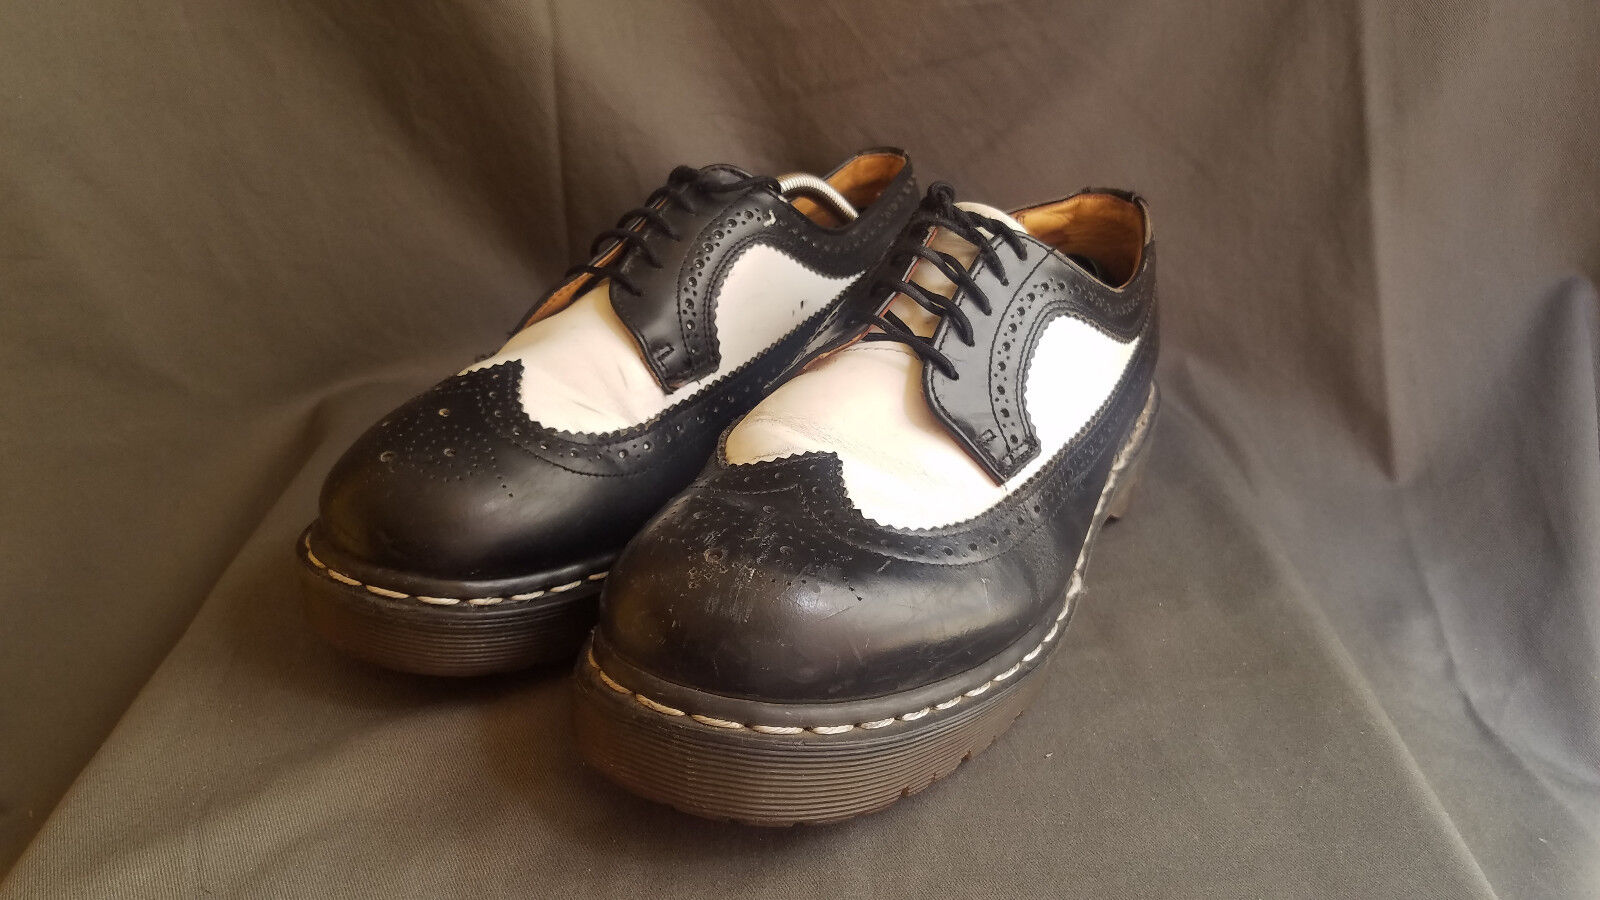 Men's Black White Leather DR. MARTENS Wingtips Brogue shoes Sz 9 Made in England